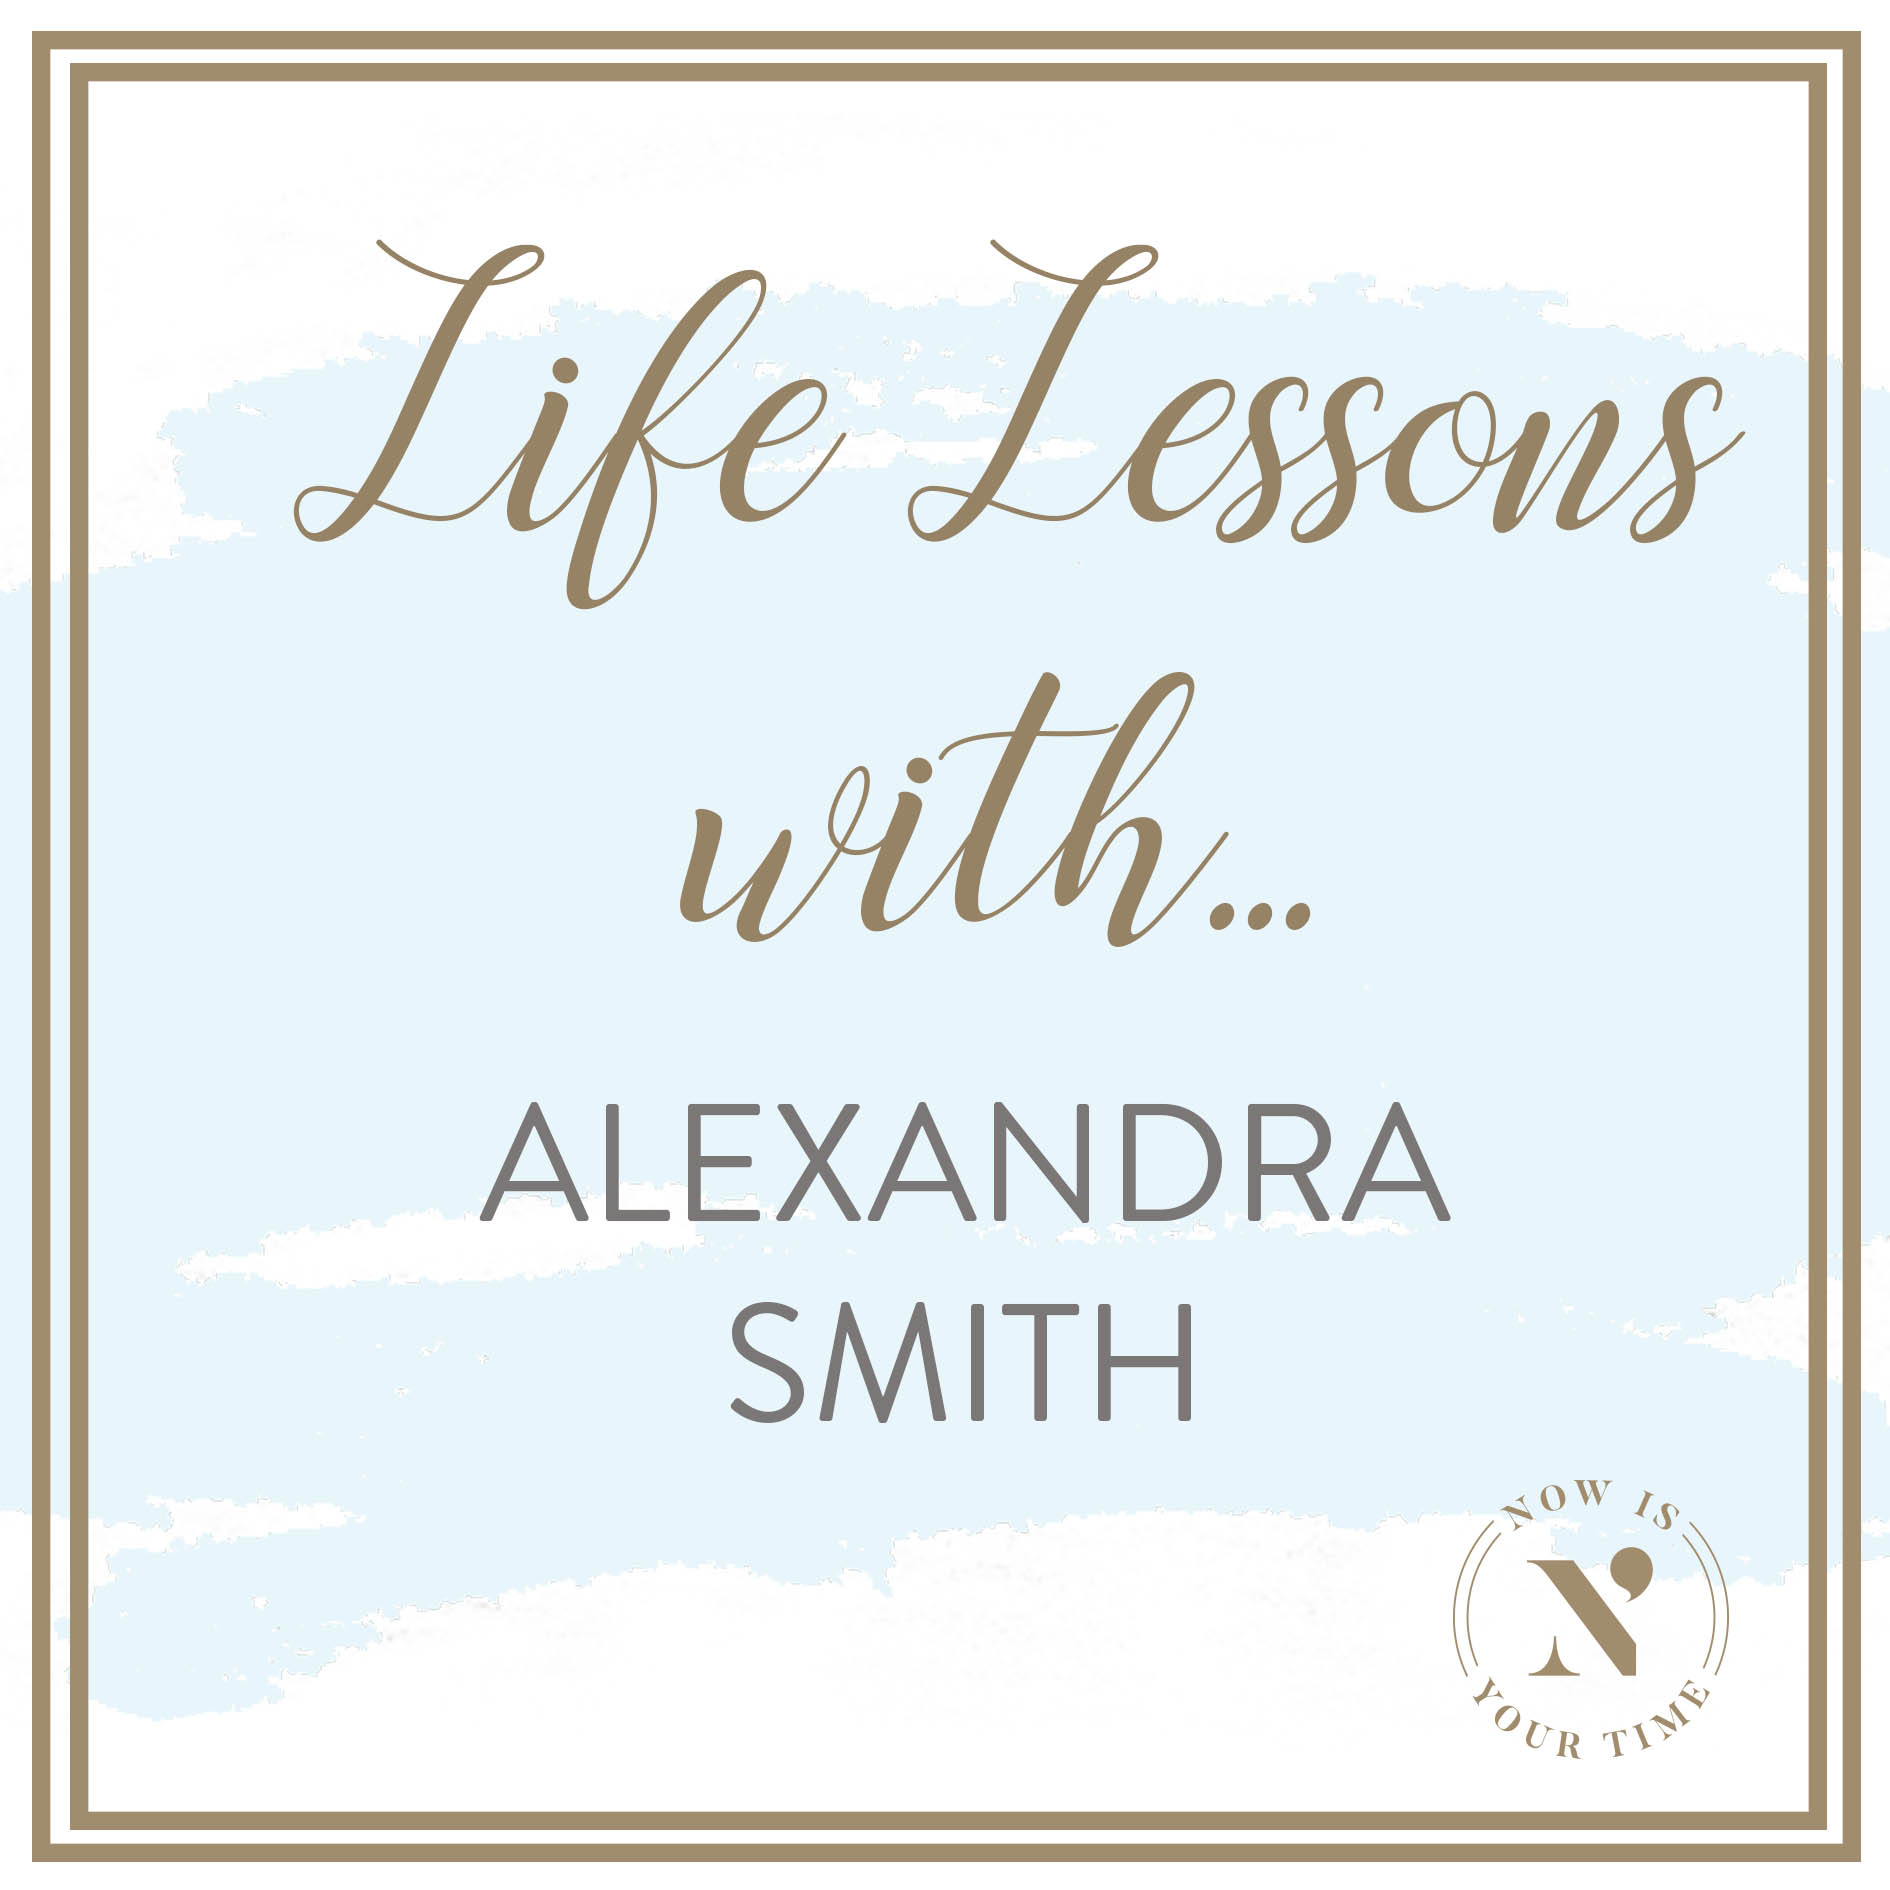 Life Lessons with podcast artwork - ALEXANDRA SMITHjpg